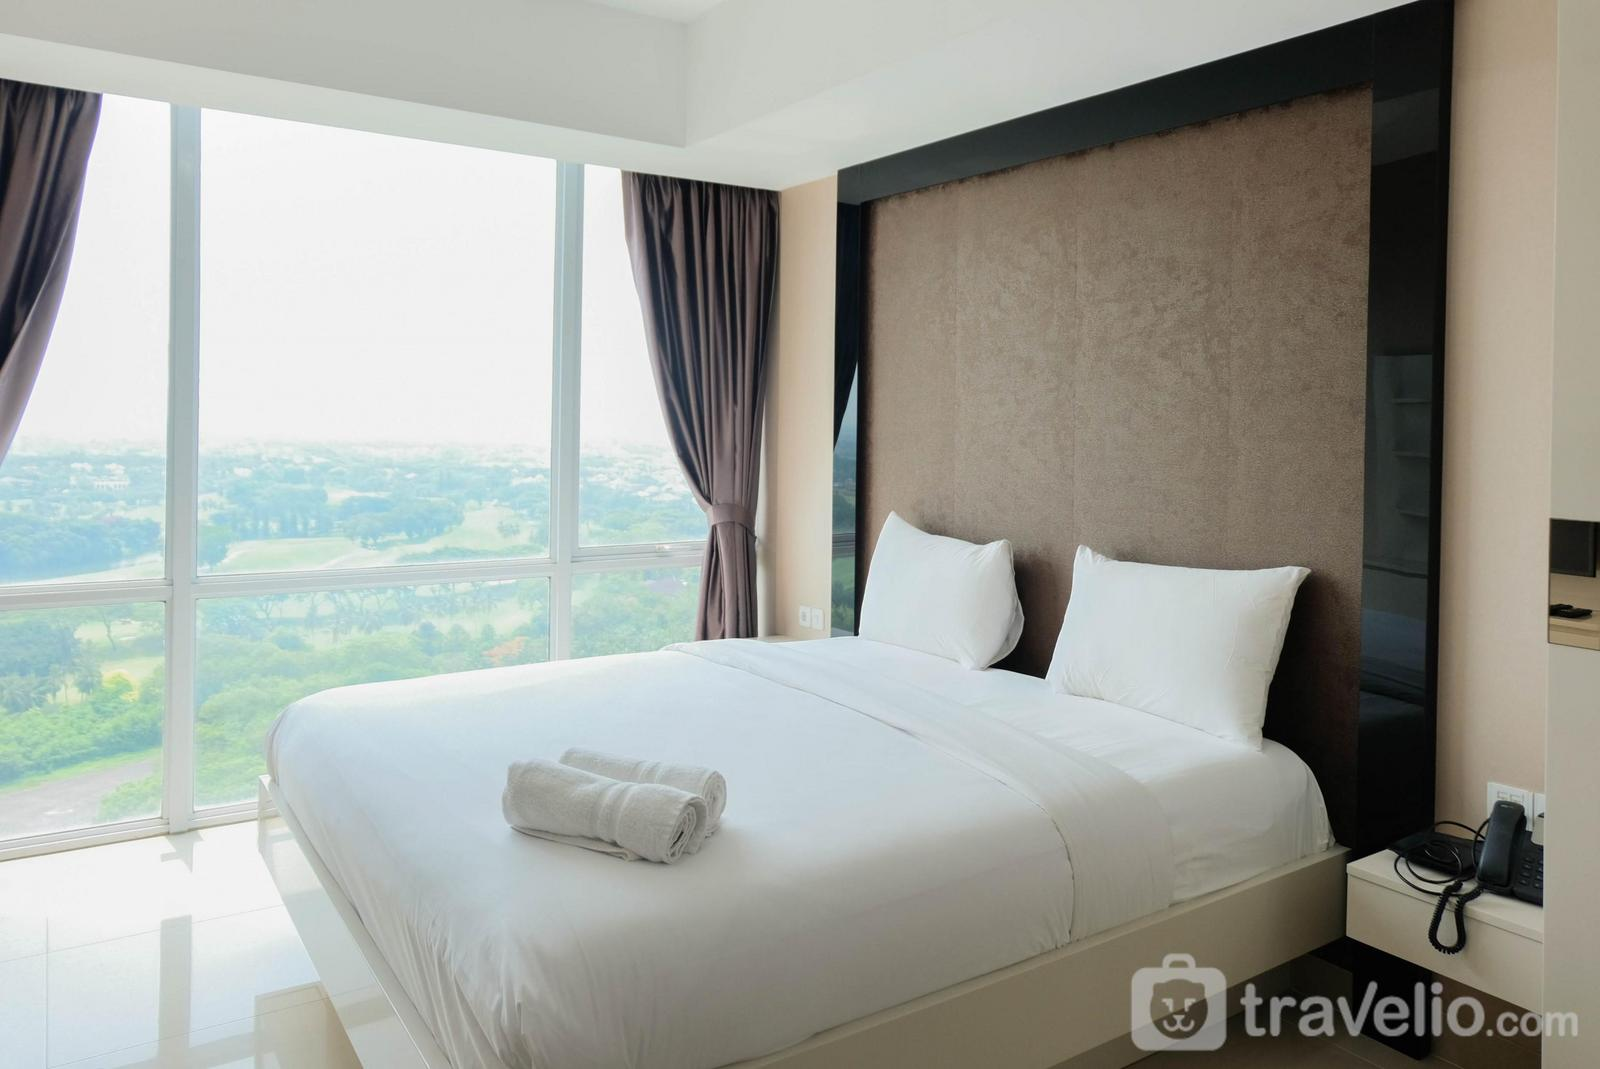 U Residence Apartment - Spacious Fully Furnished Studio Apartment at U Residence By Travelio